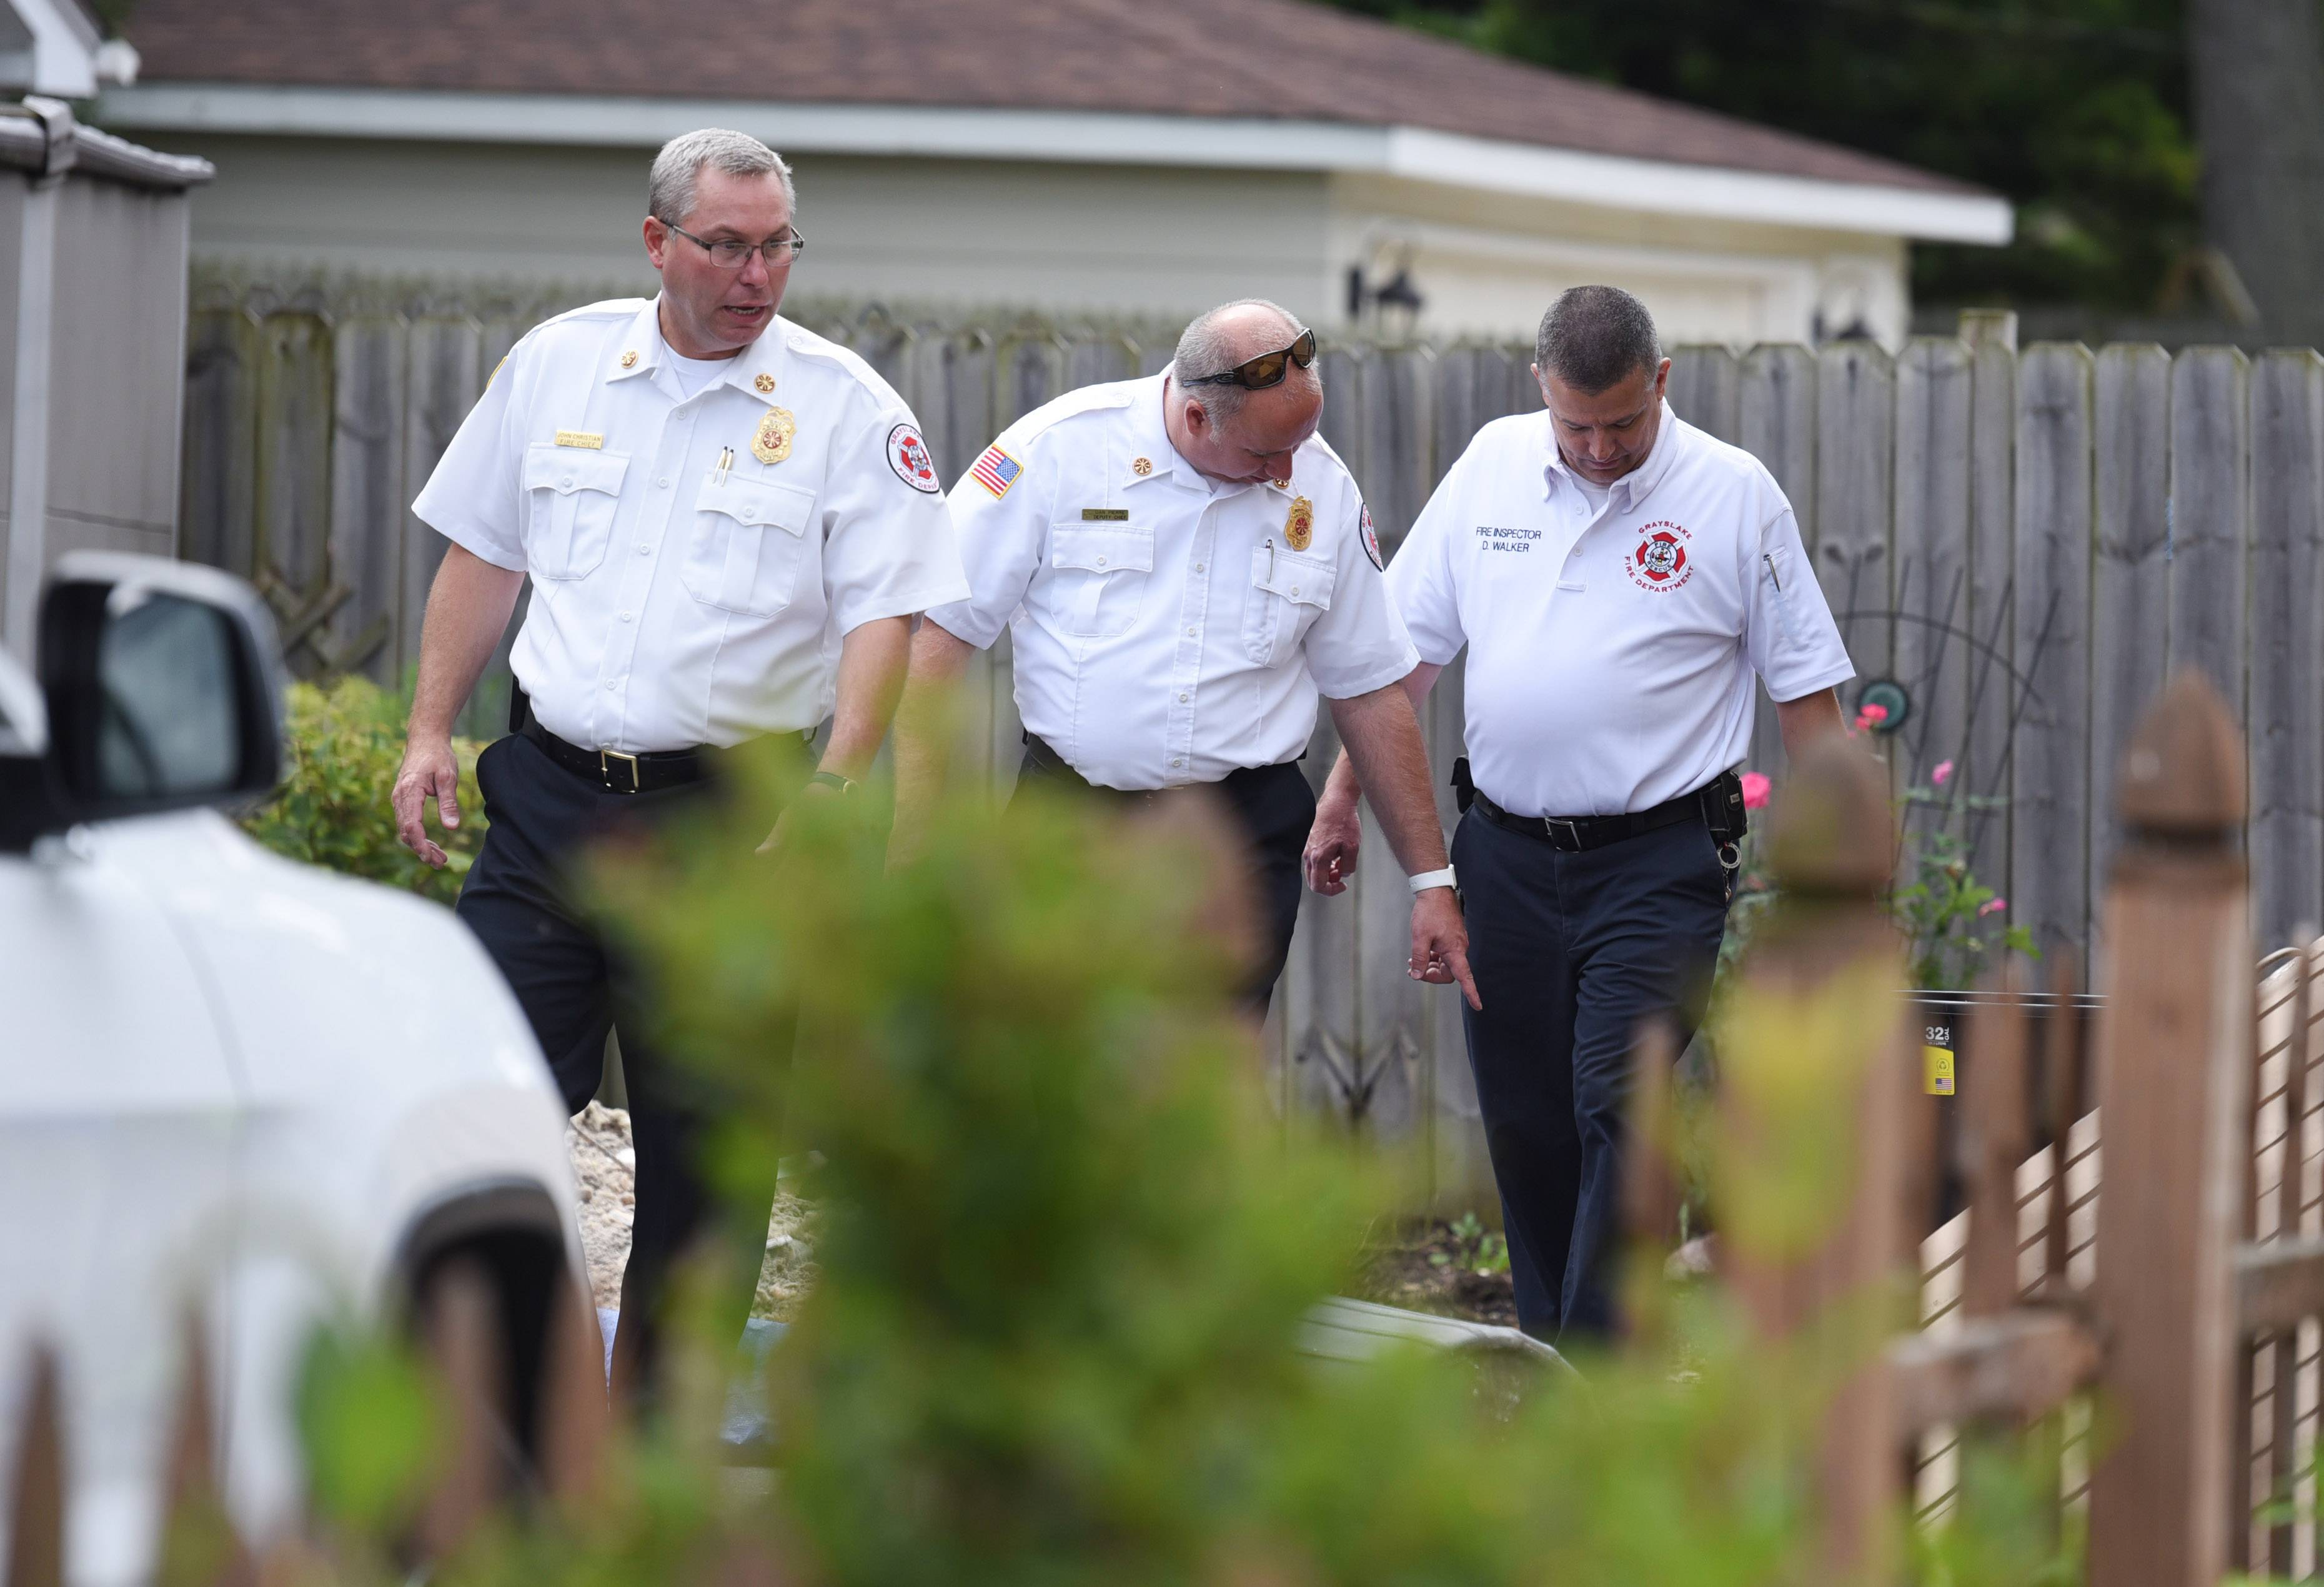 Grayslake Fire Chief John Christian, from left, Deputy Chief Dan Pierre and Fire Inspector Dean Walker at the fire scene Tuesday morning on the 300 block of Normandy Lane in Grayslake.